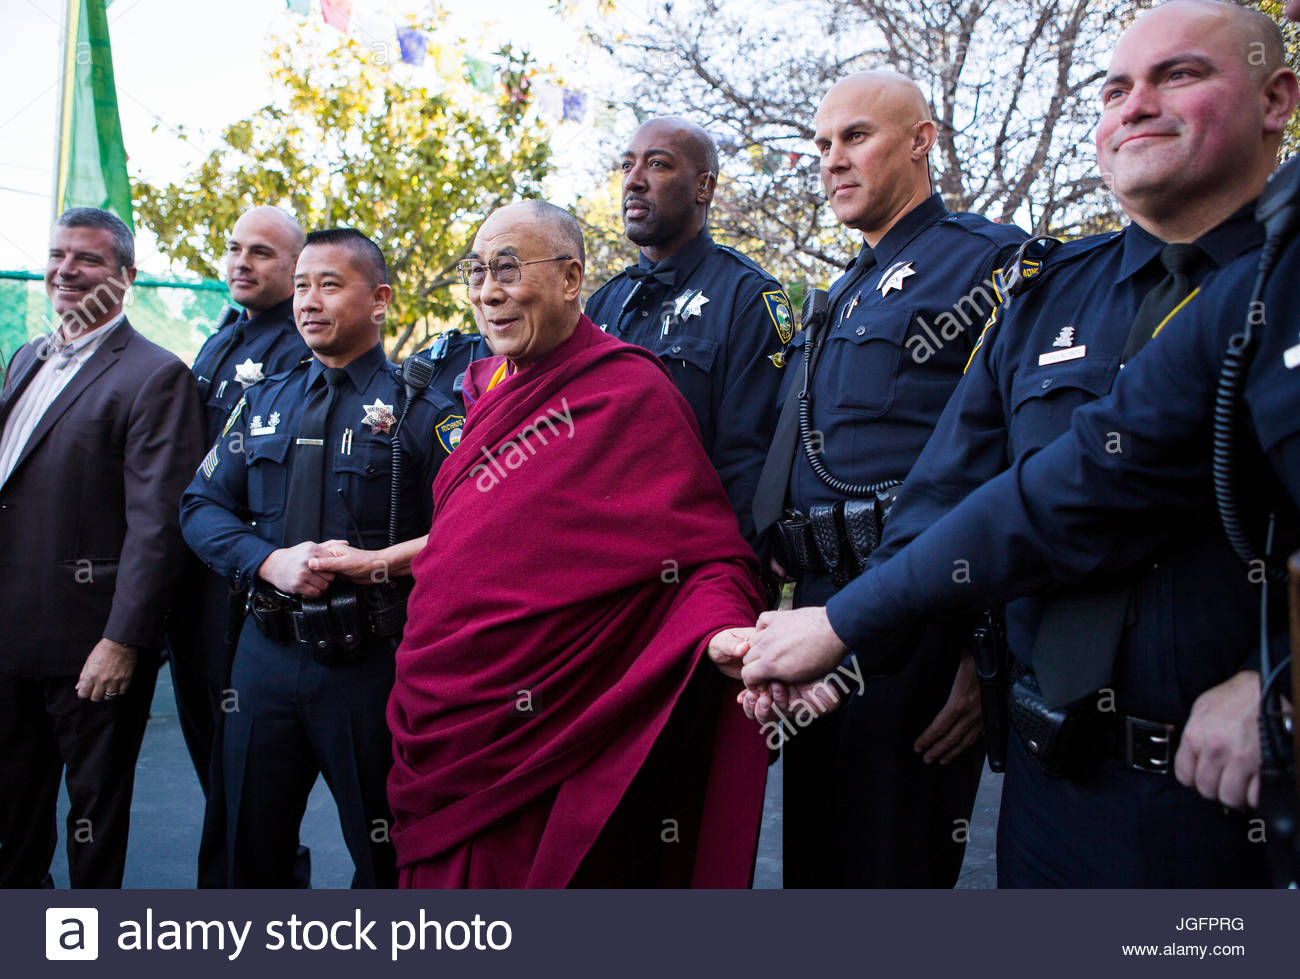 The Dalai Lama joins hands with law enforcement officers. - Stock Image